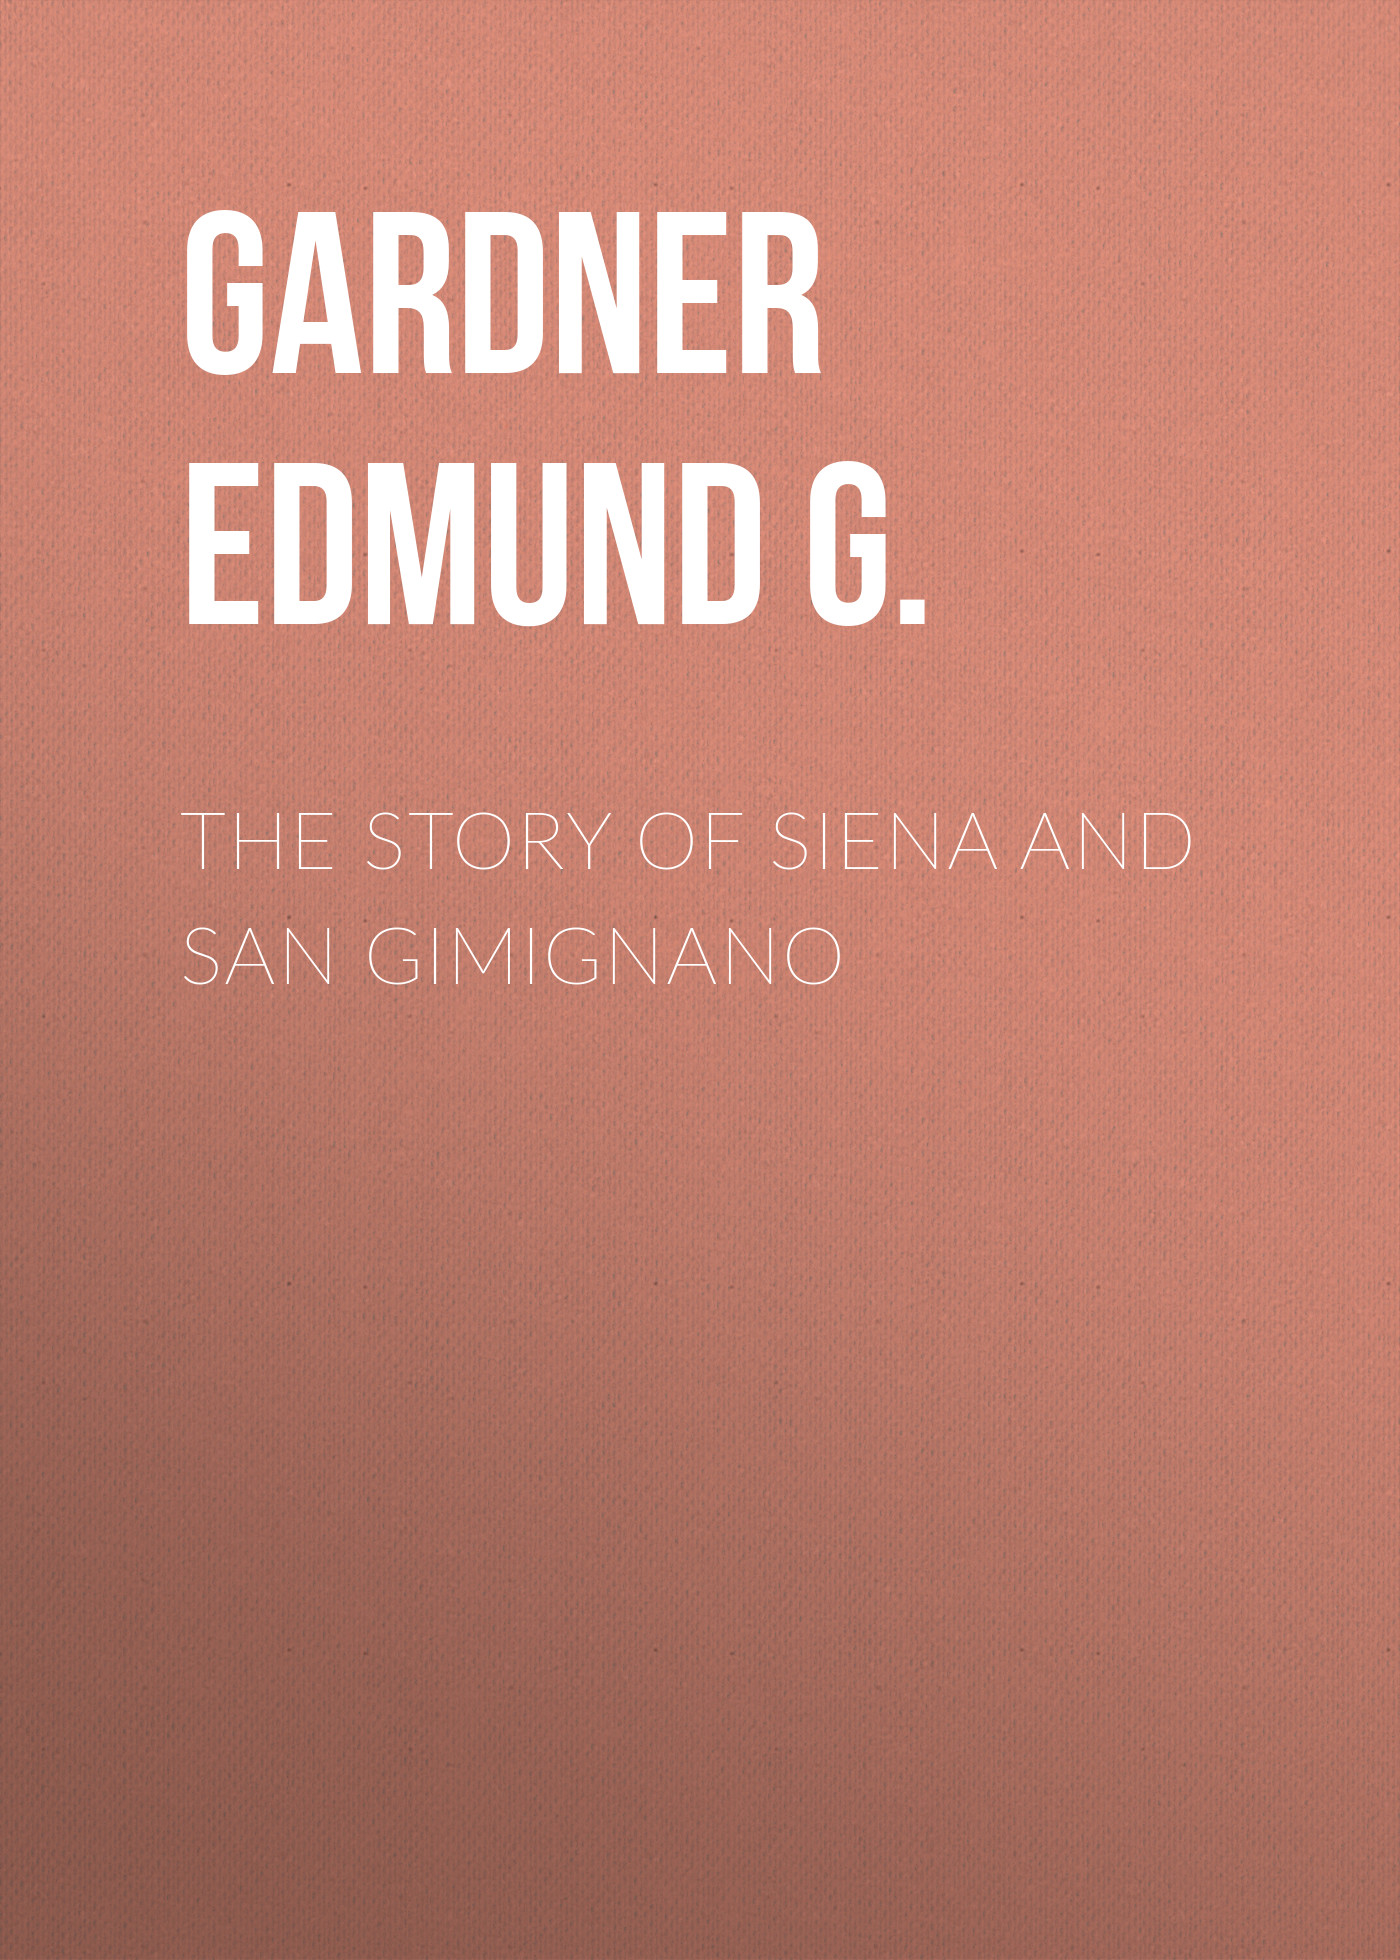 Gardner Edmund G. The Story of Siena and San Gimignano gardner edmund g the story of siena and san gimignano